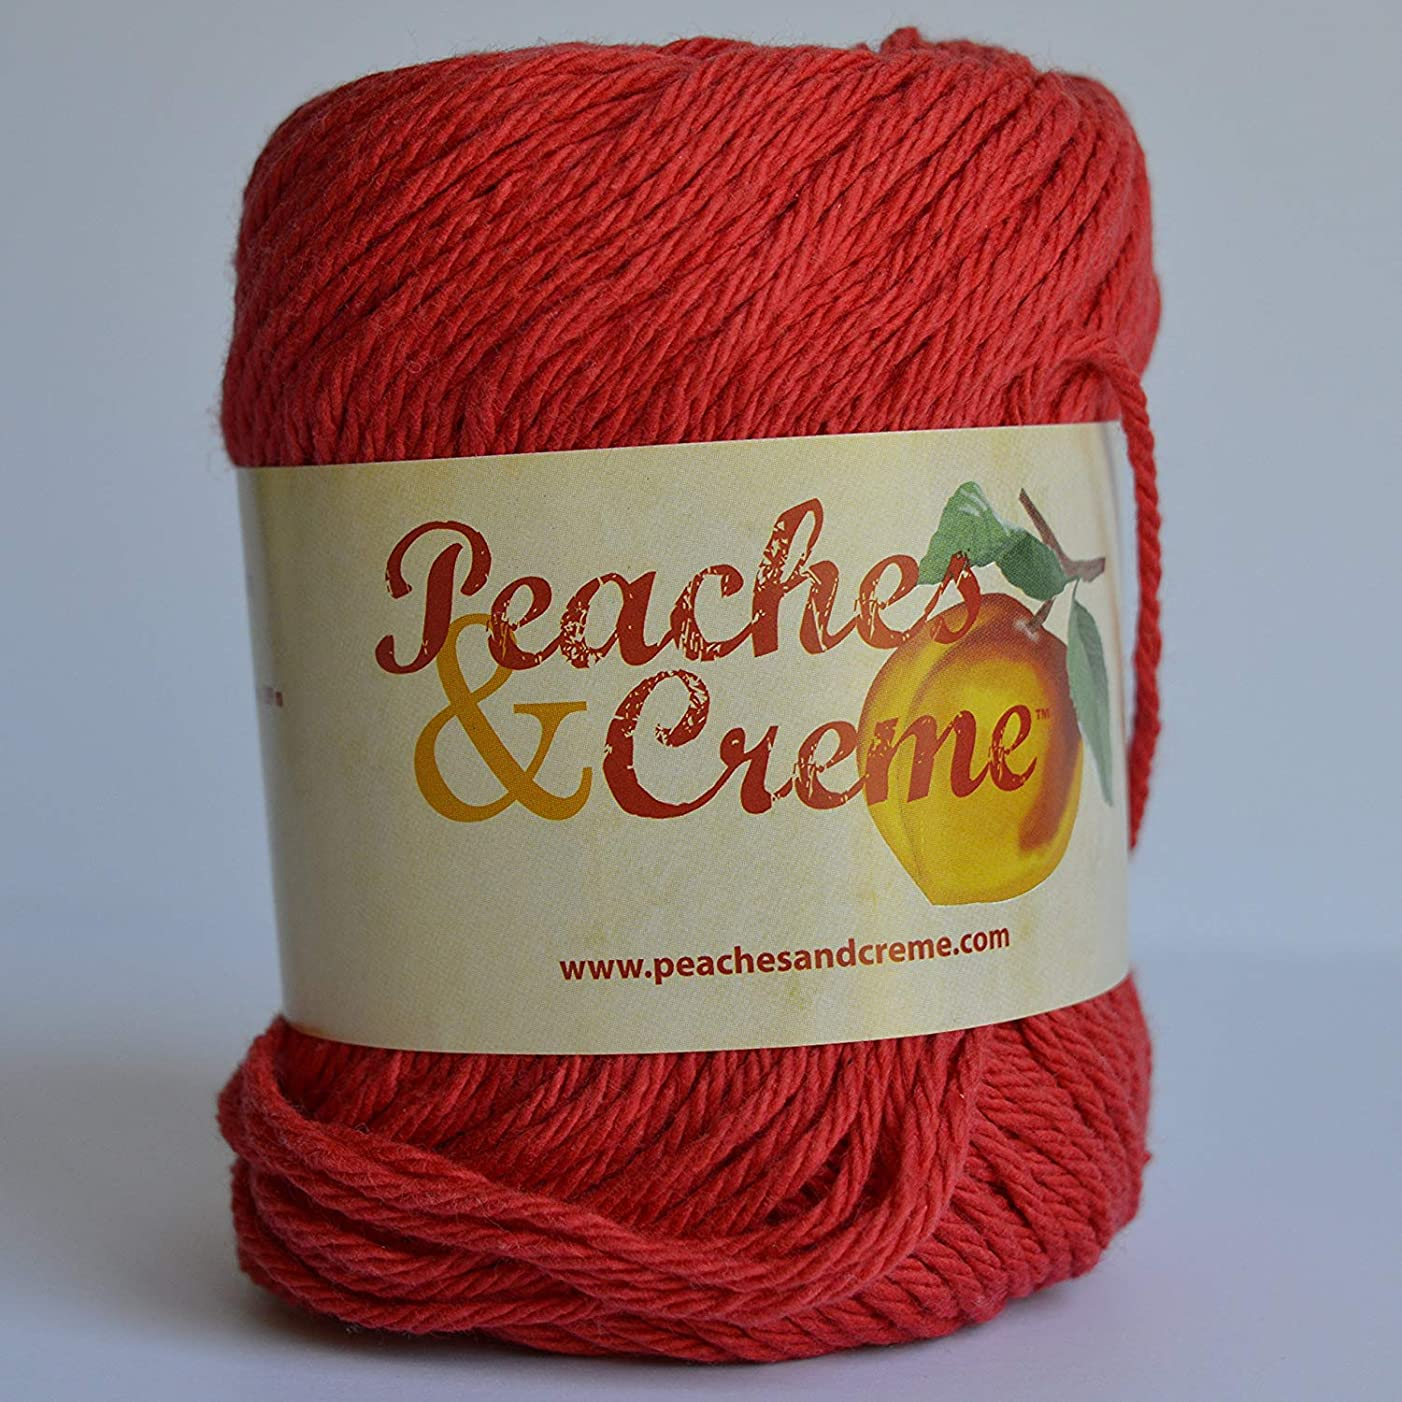 Spinrite Peaches & Creme (Cream) Cotton Yarn Red 2.5 oz